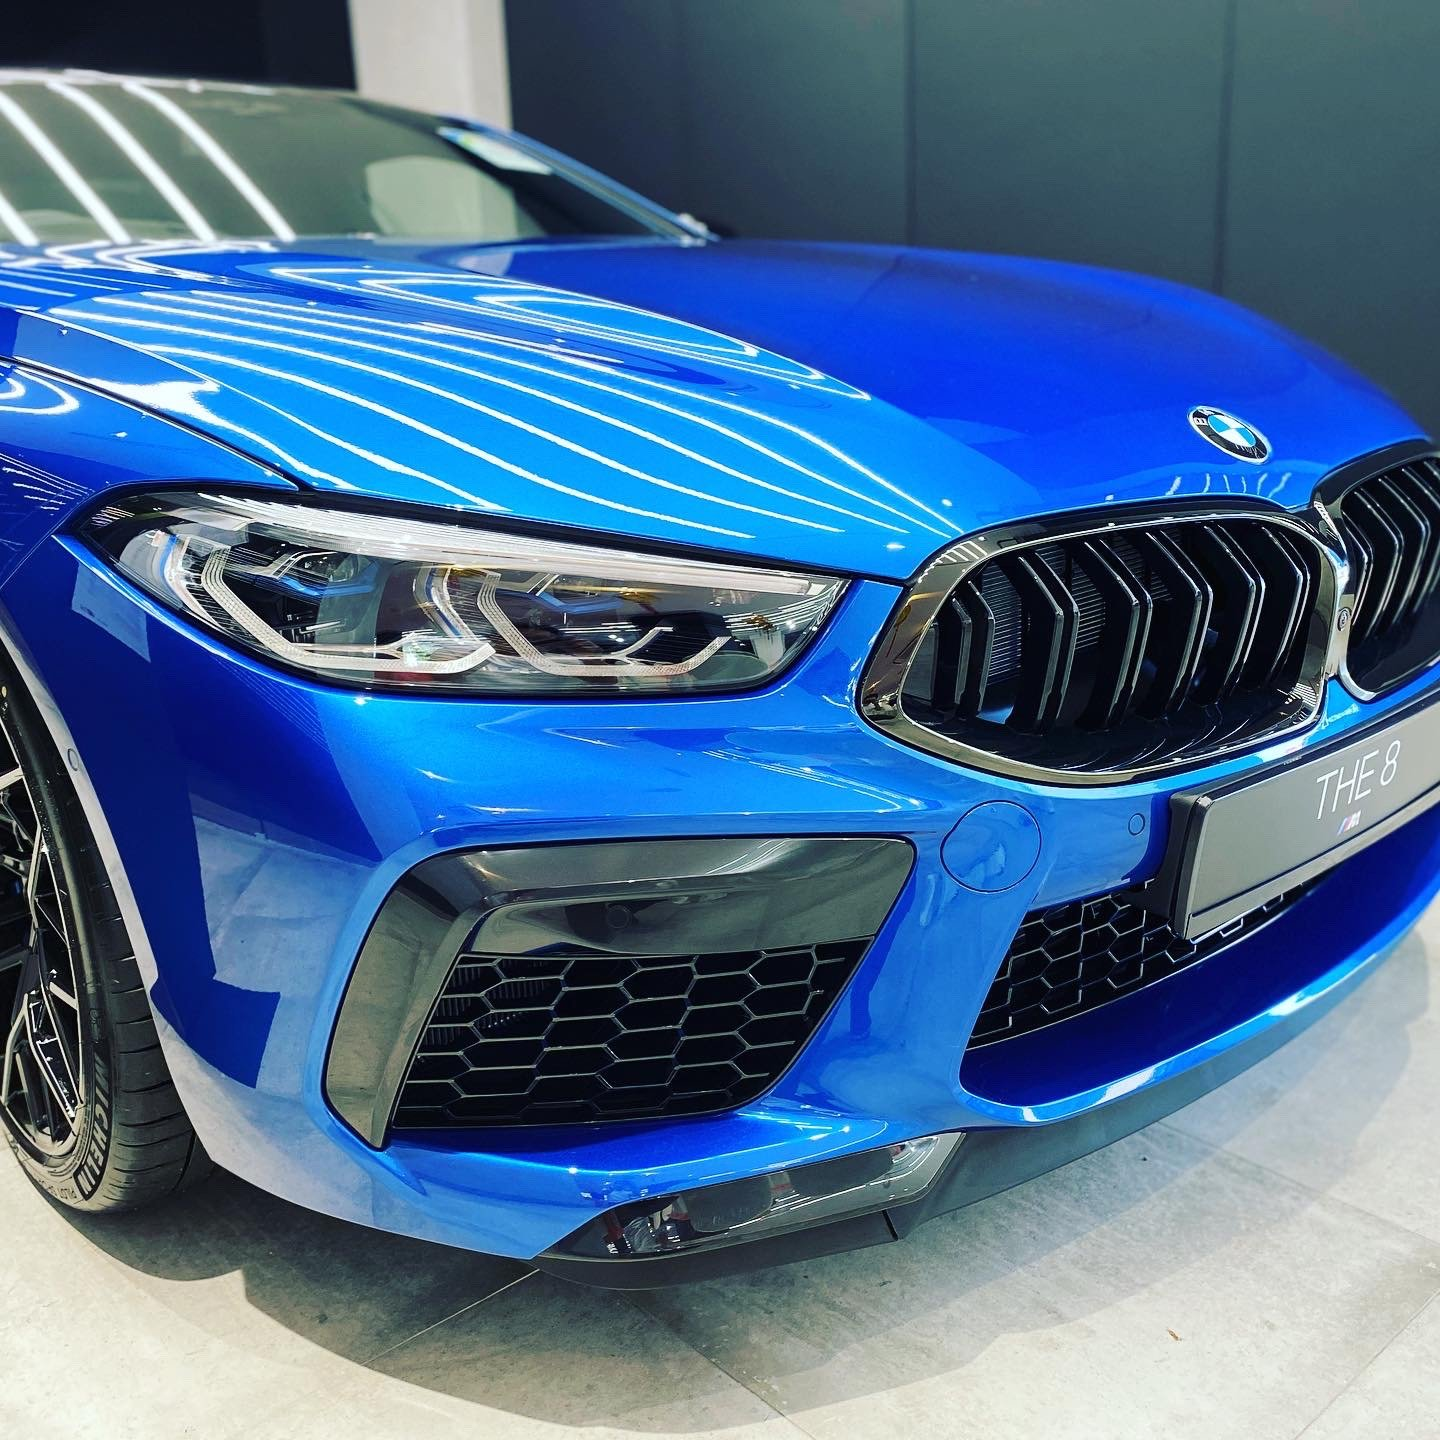 2020 Bmw M8 Competition Coupe For Sale: BMW M8 Competition For Sale In Singapore!